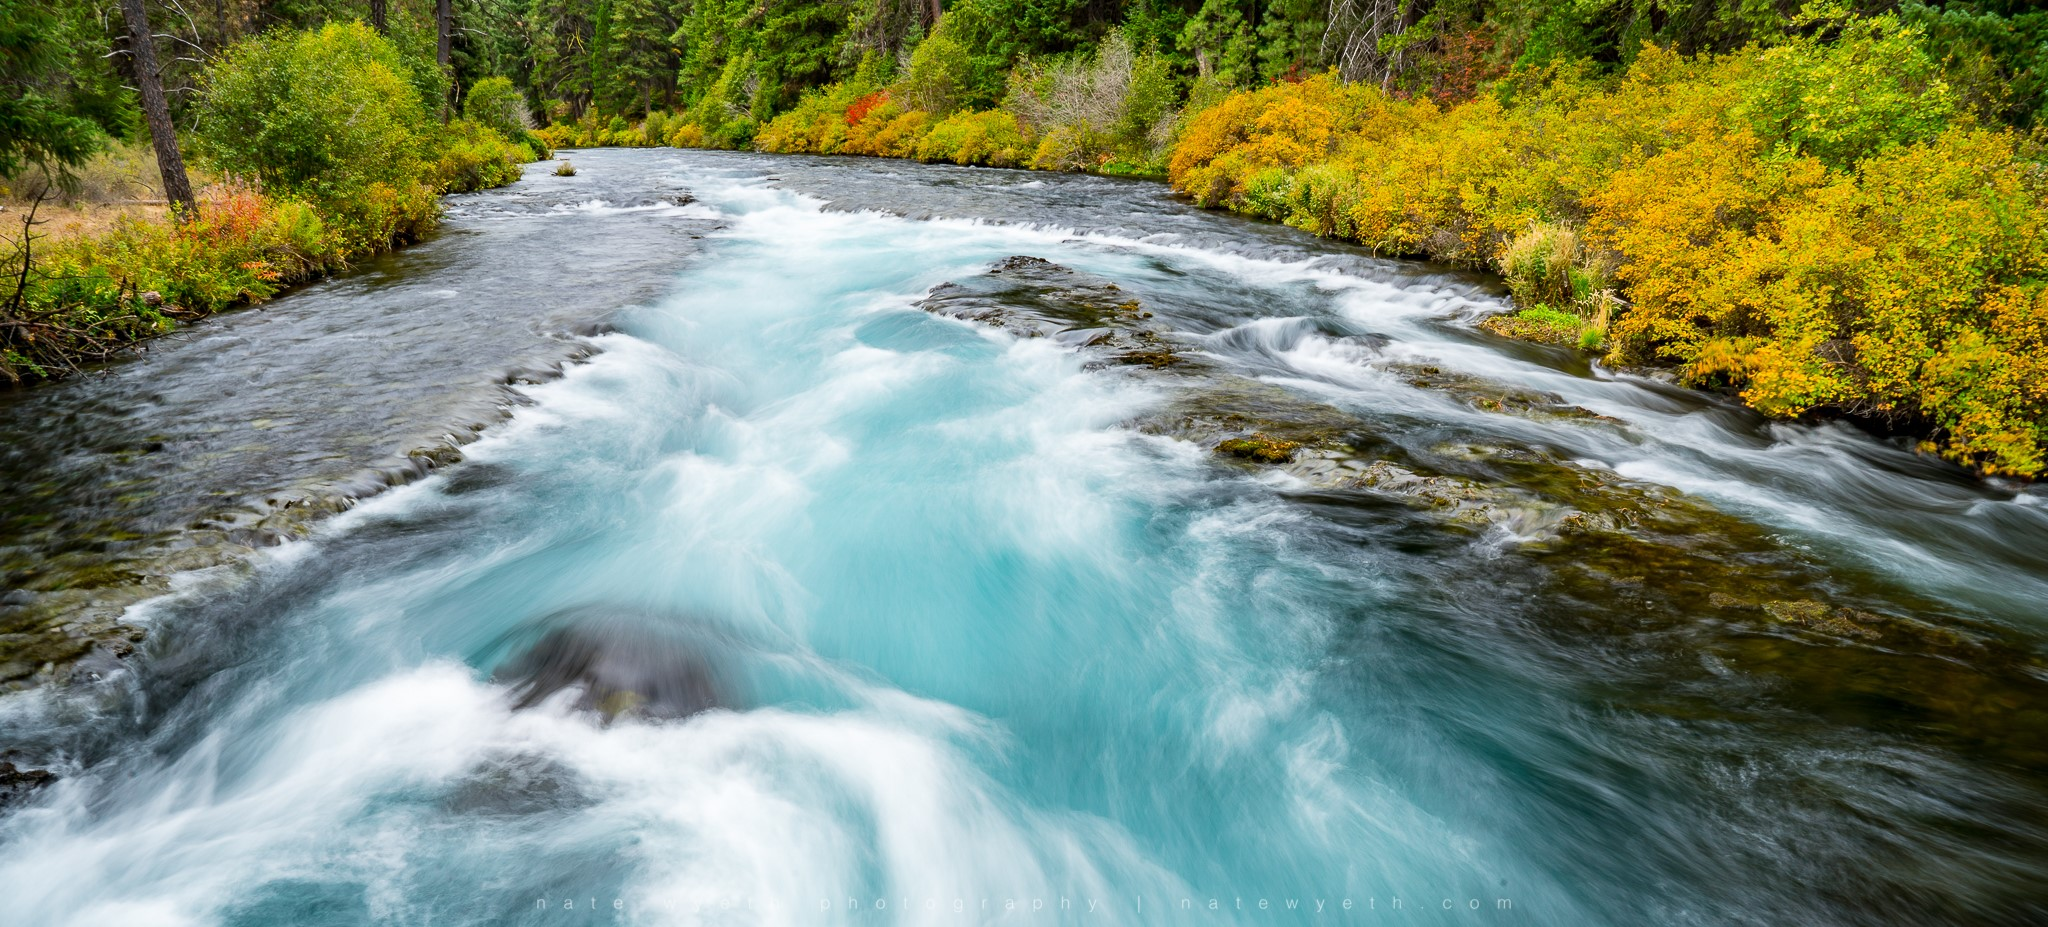 The mighty Metolius River is definitely worth a day trip when you're staying in Bend.